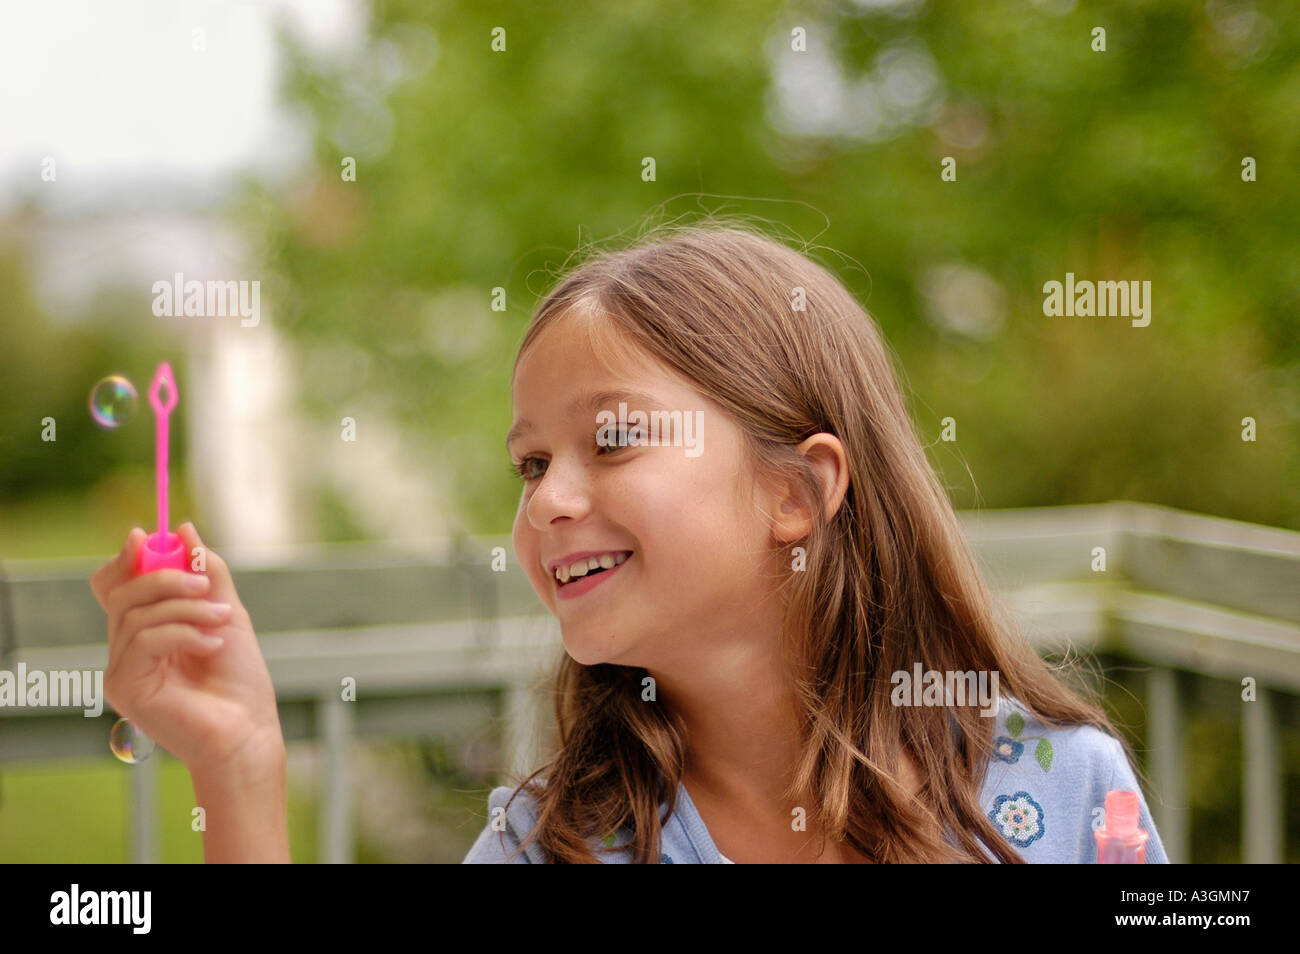 A little girl blowing bubbles Stock Photo